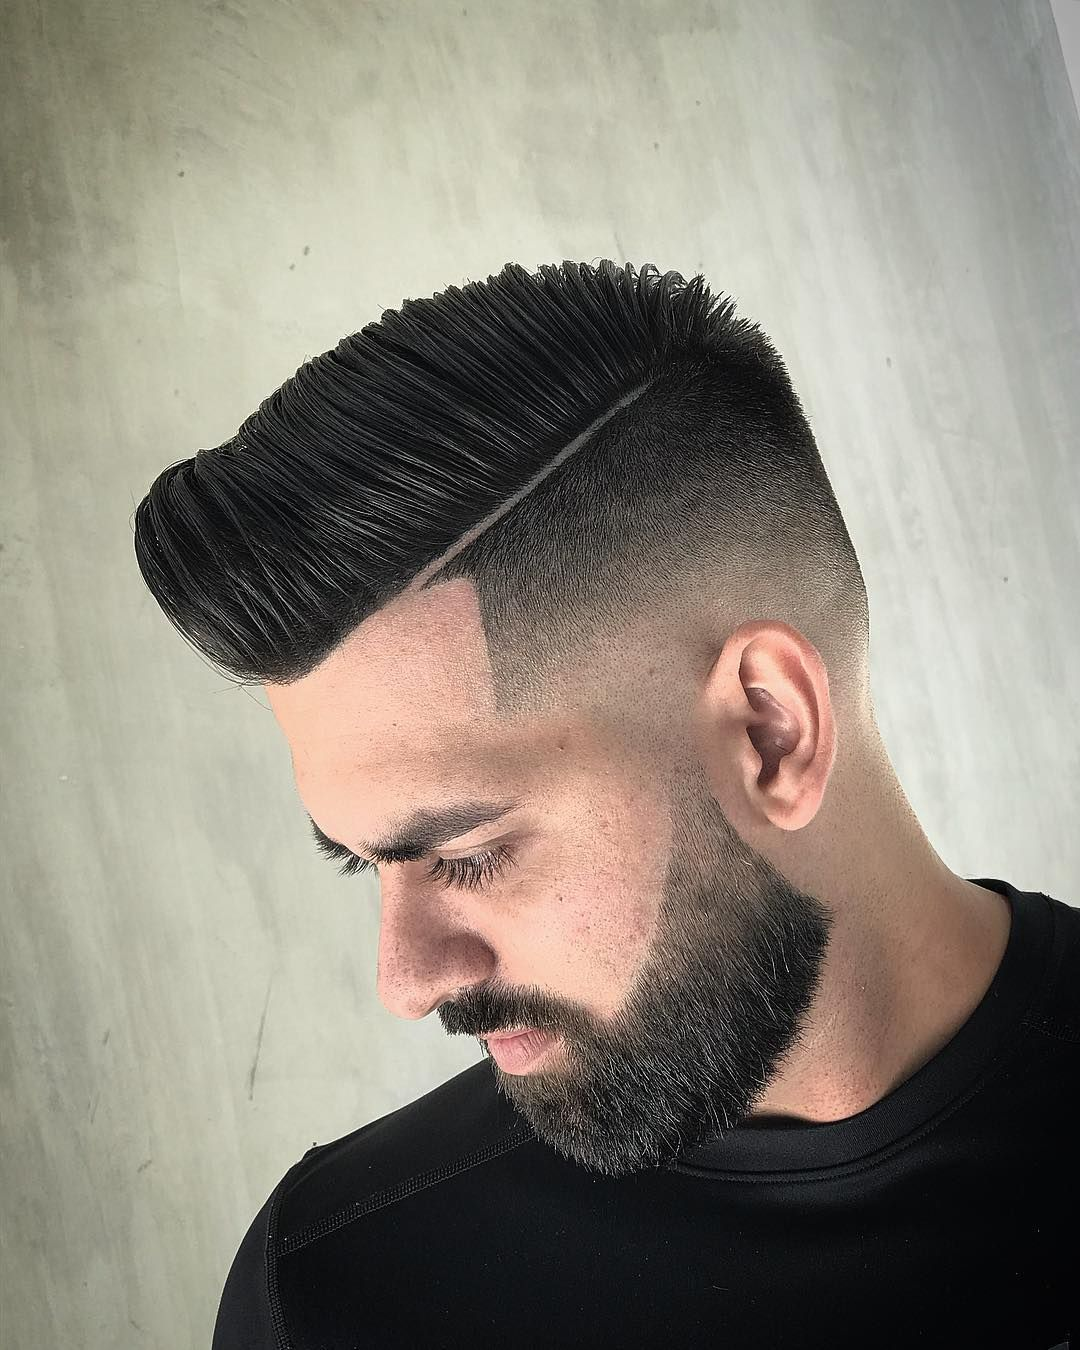 How To Get The Perfect Side Parting 19 Best Side Part Haircuts Men S Hairstyles In 2020 Mens Hairstyles Haircuts For Men Side Part Haircut